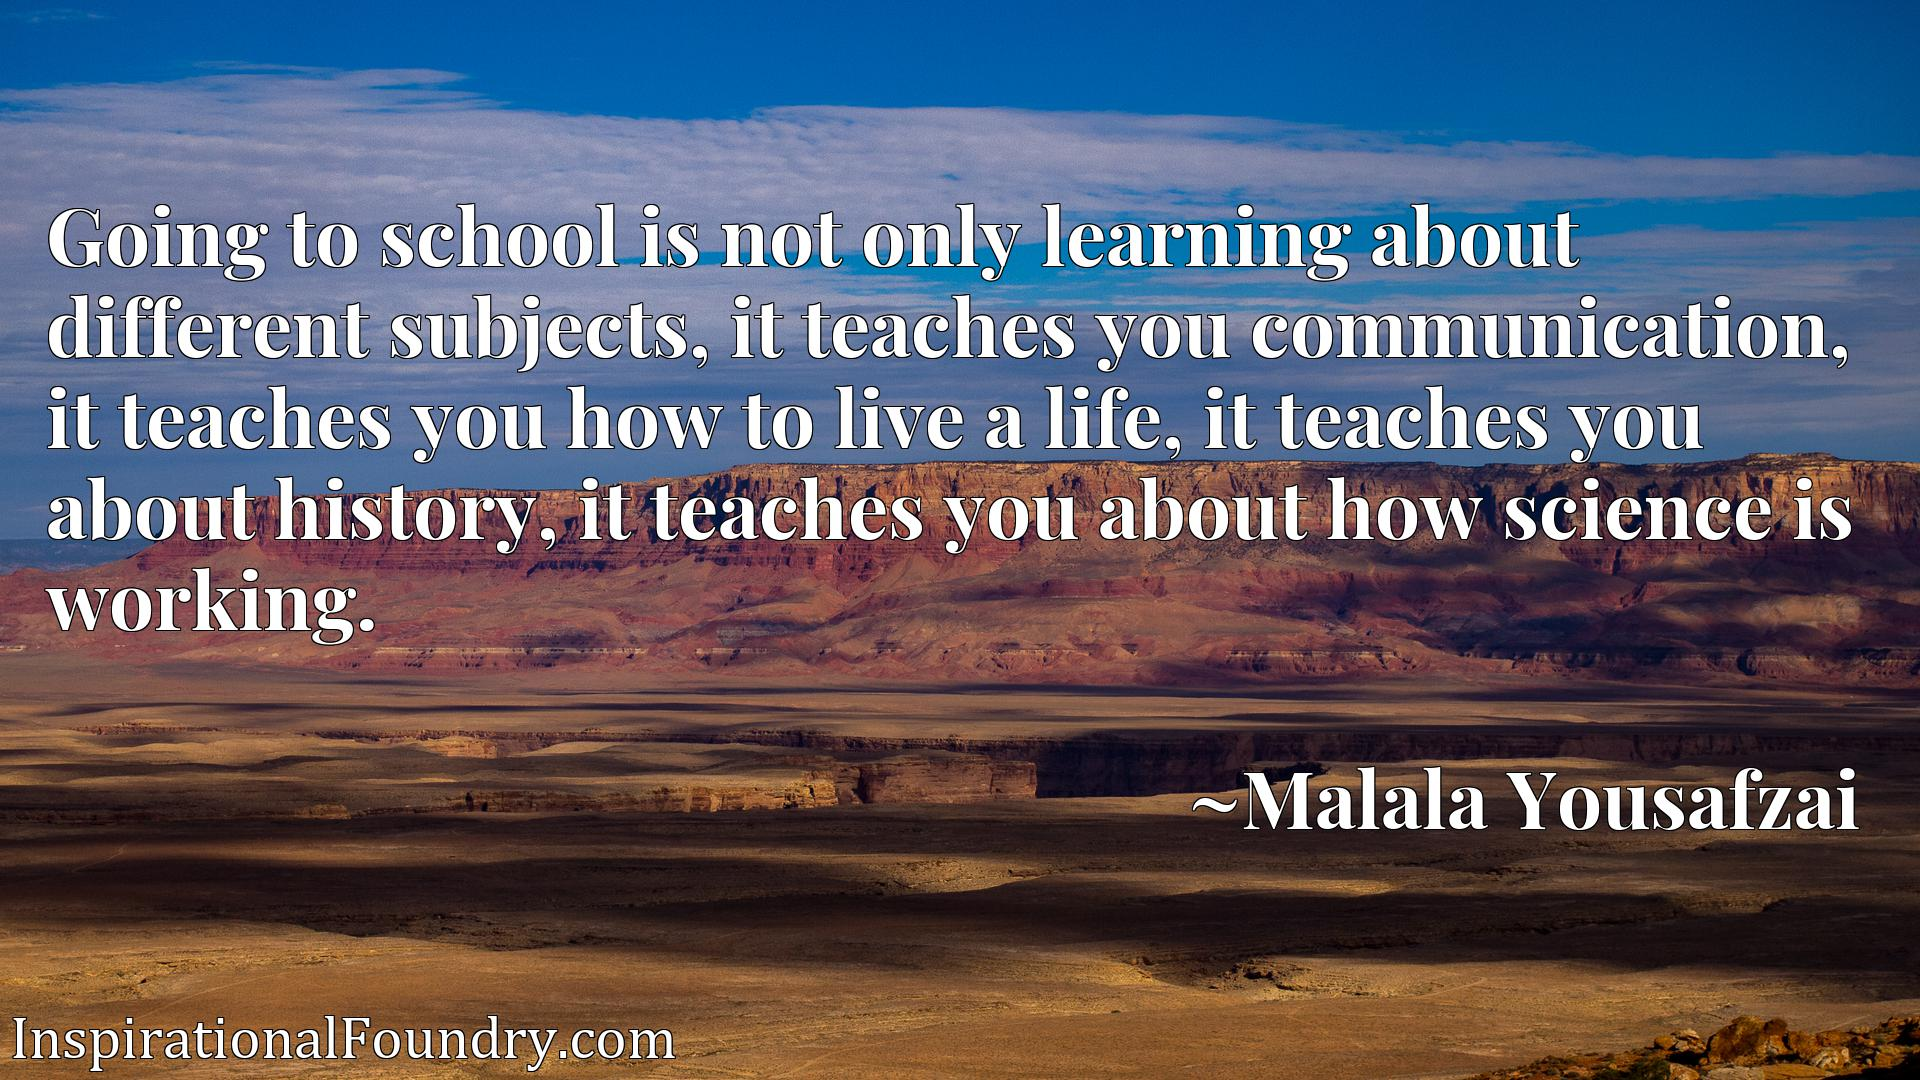 Going to school is not only learning about different subjects, it teaches you communication, it teaches you how to live a life, it teaches you about history, it teaches you about how science is working.